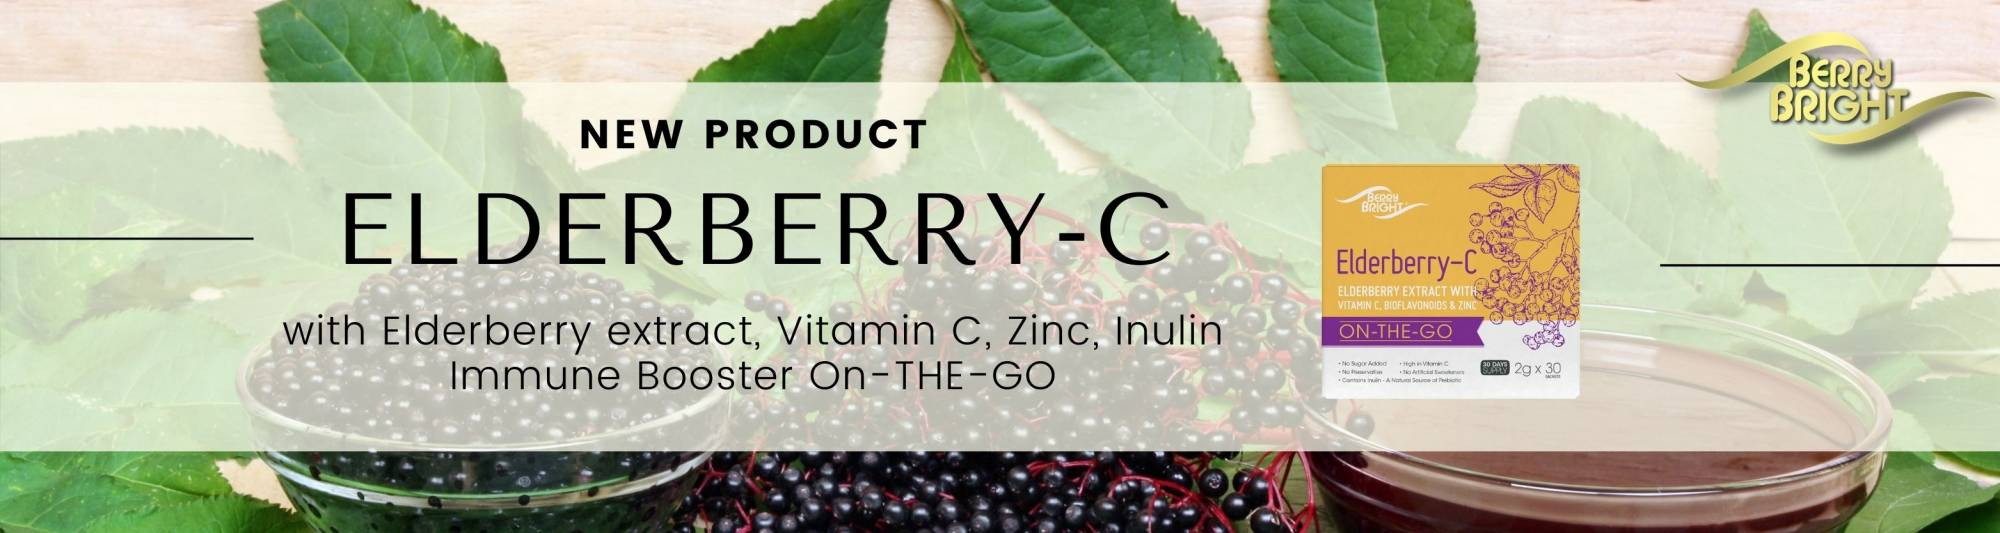 Berry Brigth Elderberry-C